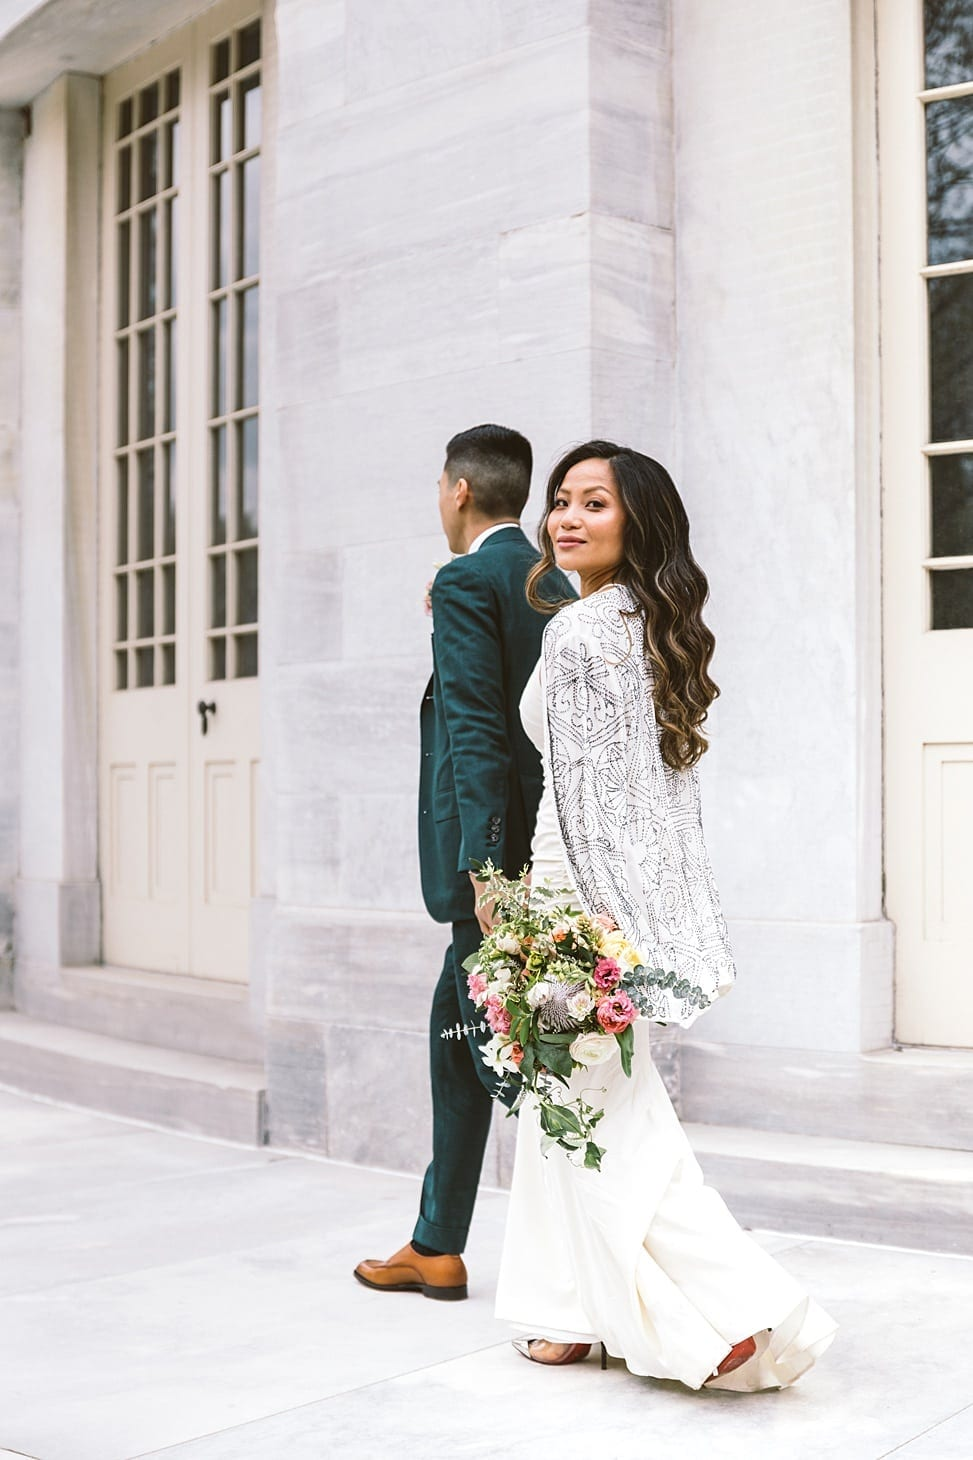 30 Winter Wedding Ideas That Are GorgeousAF